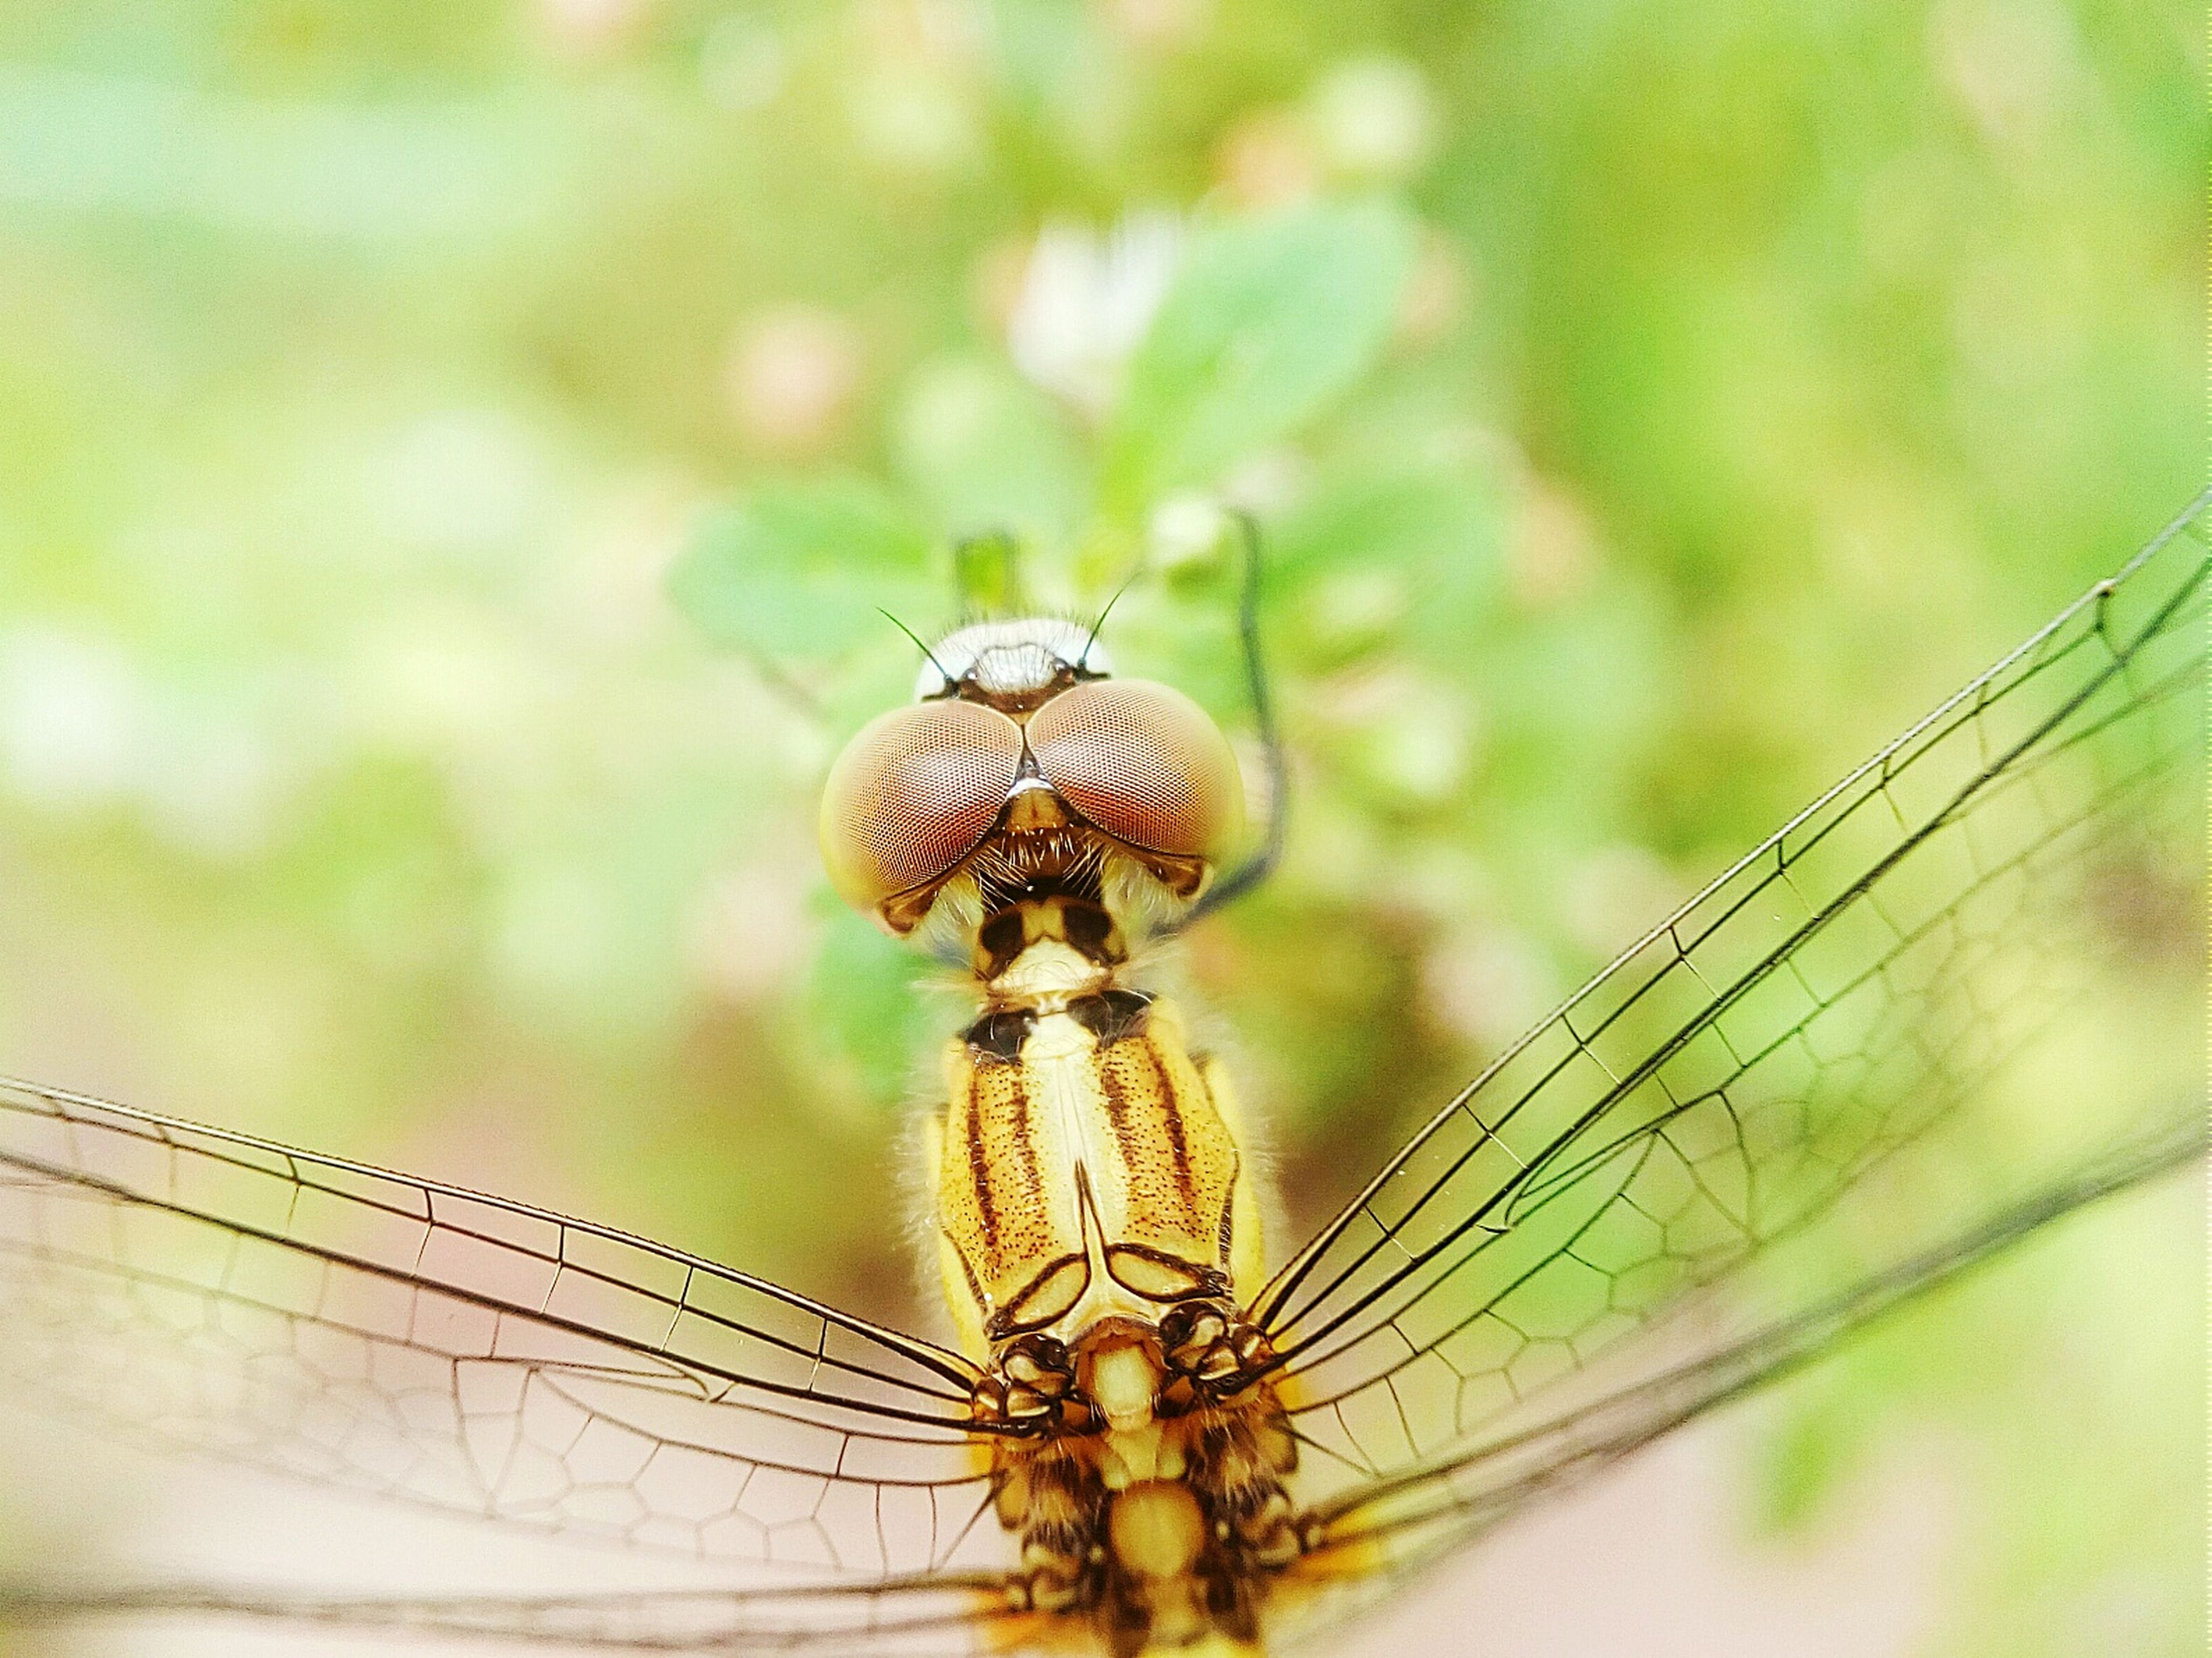 animal themes, animals in the wild, one animal, wildlife, insect, close-up, focus on foreground, perching, animal wing, nature, zoology, dragonfly, day, outdoors, natural pattern, animal antenna, no people, selective focus, full length, animal markings